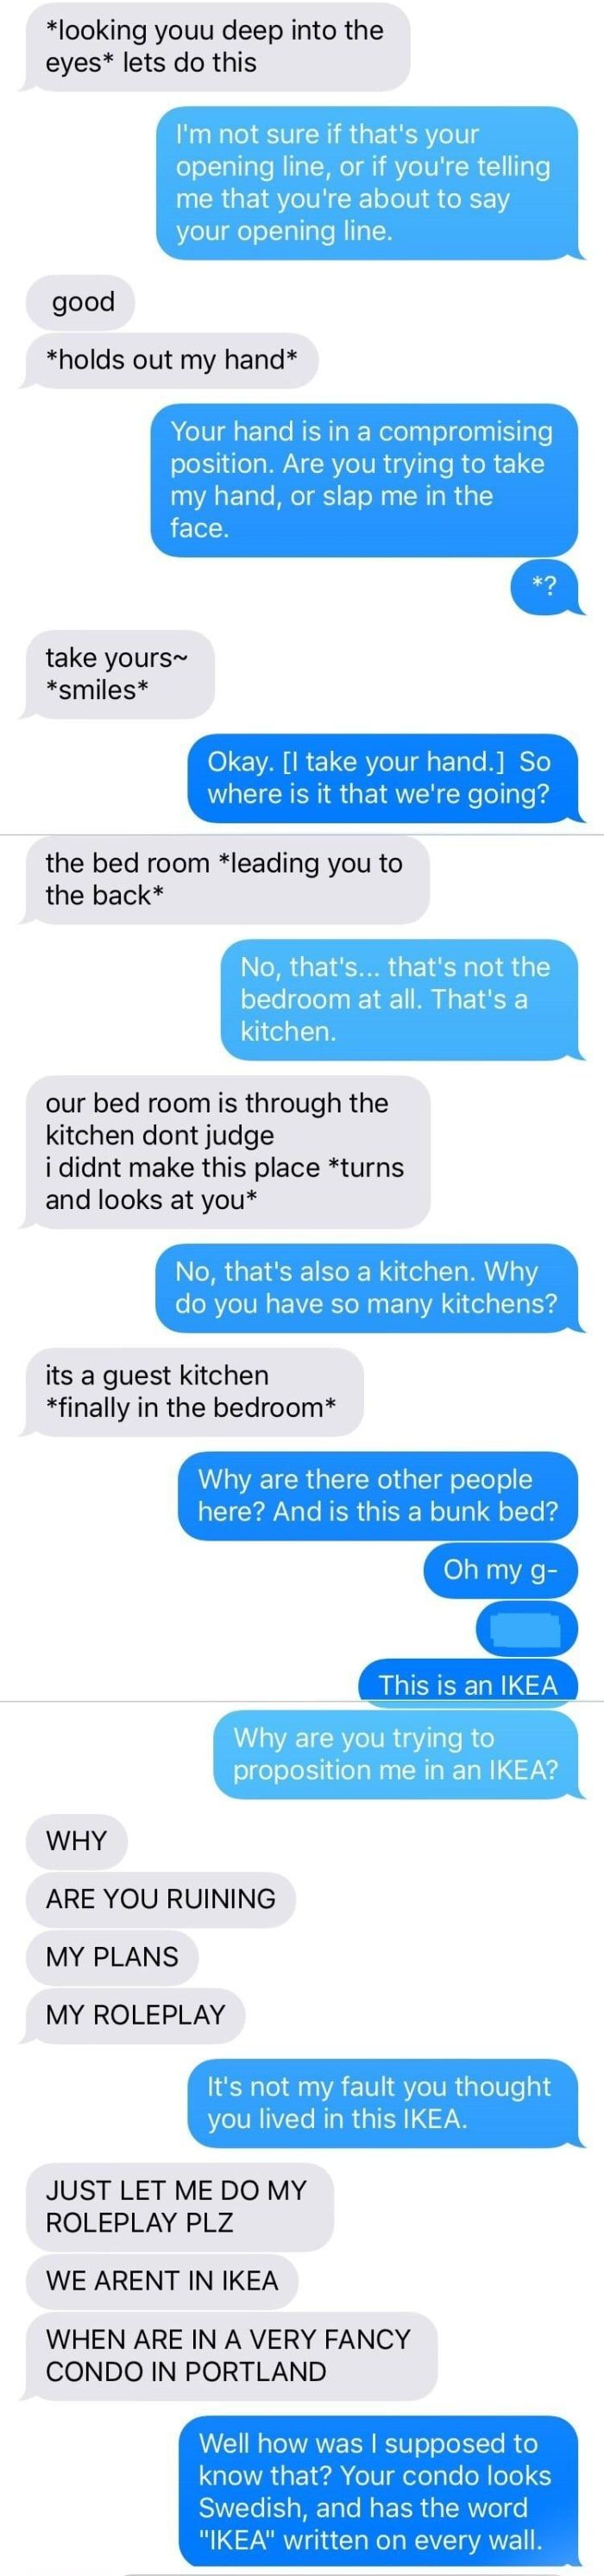 17 Text Messages That'll Make You Cringe So Hard You Won't Be Able To Stand It